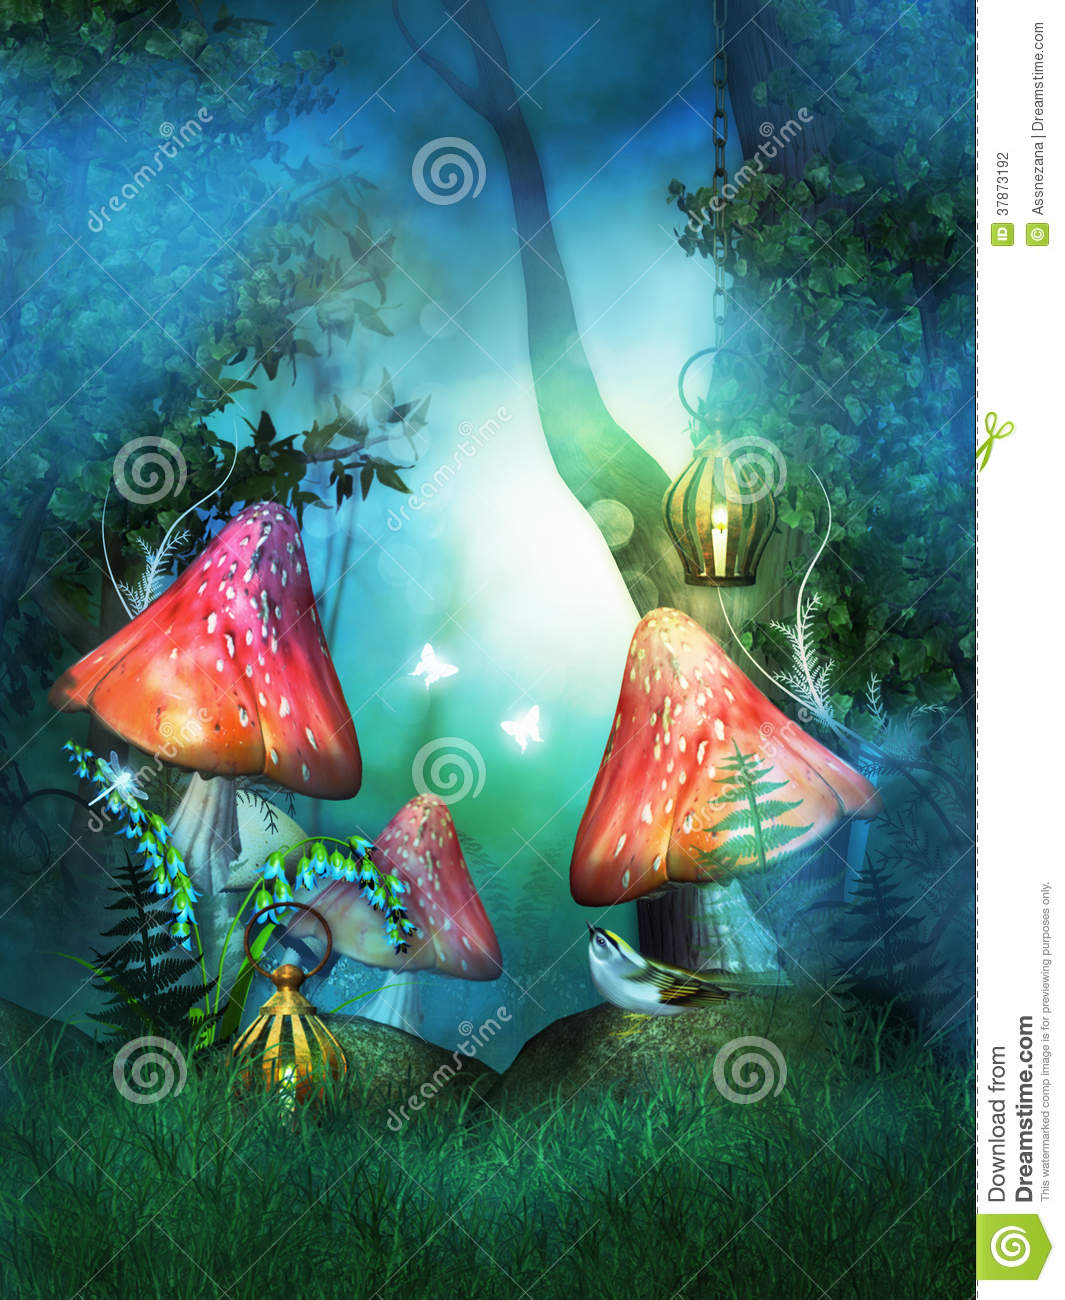 Fairy Wood With Big Red Mushrooms Stock Photography - Image: 37873192